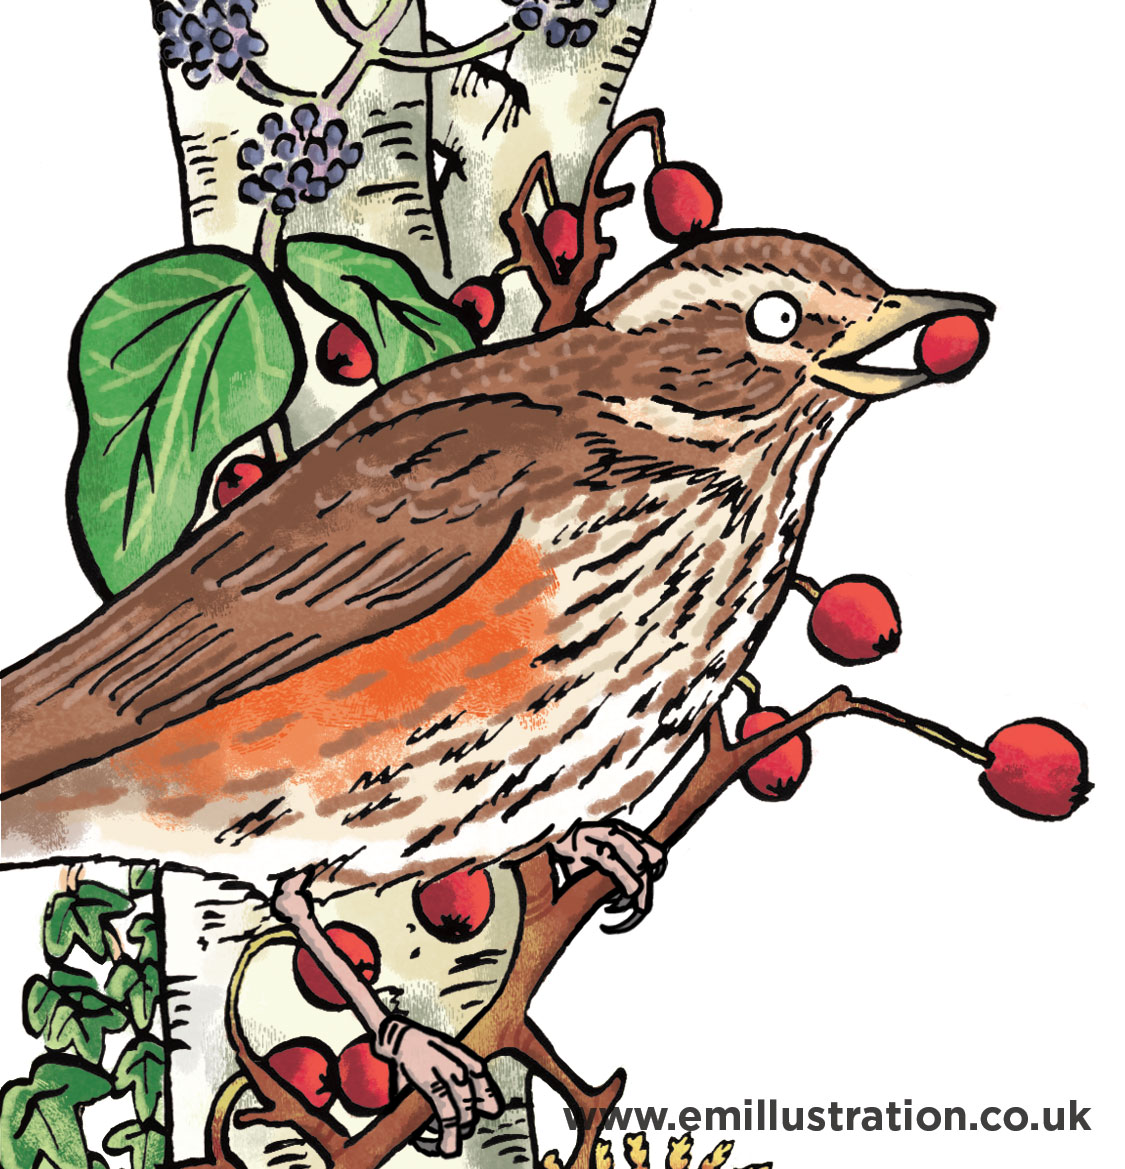 colourful simple hand drawn cartoon illustration of a redwing bird by children's educational wildlife illustrator emma metcalfe